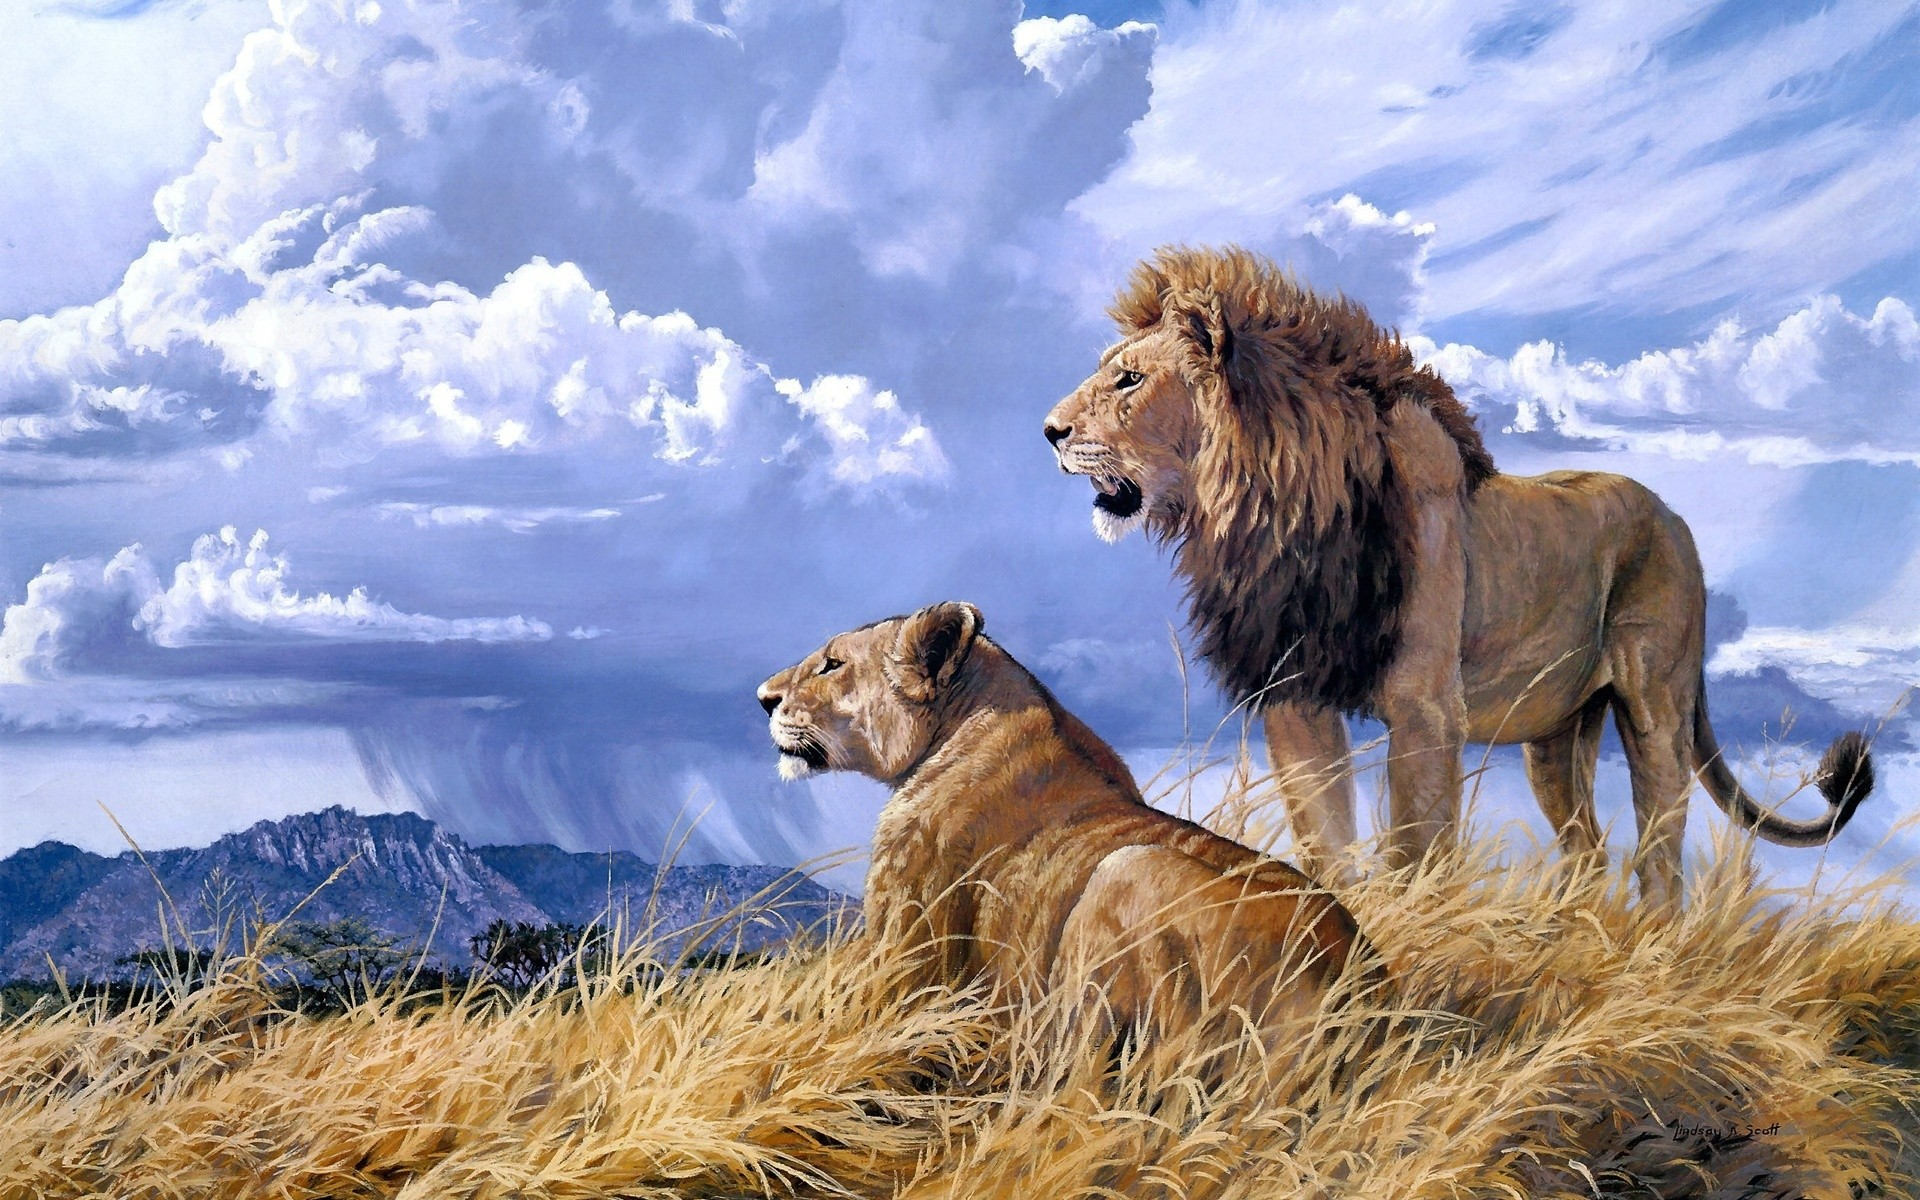 africa grass predator couple love sky clouds rain weather wallpaper .